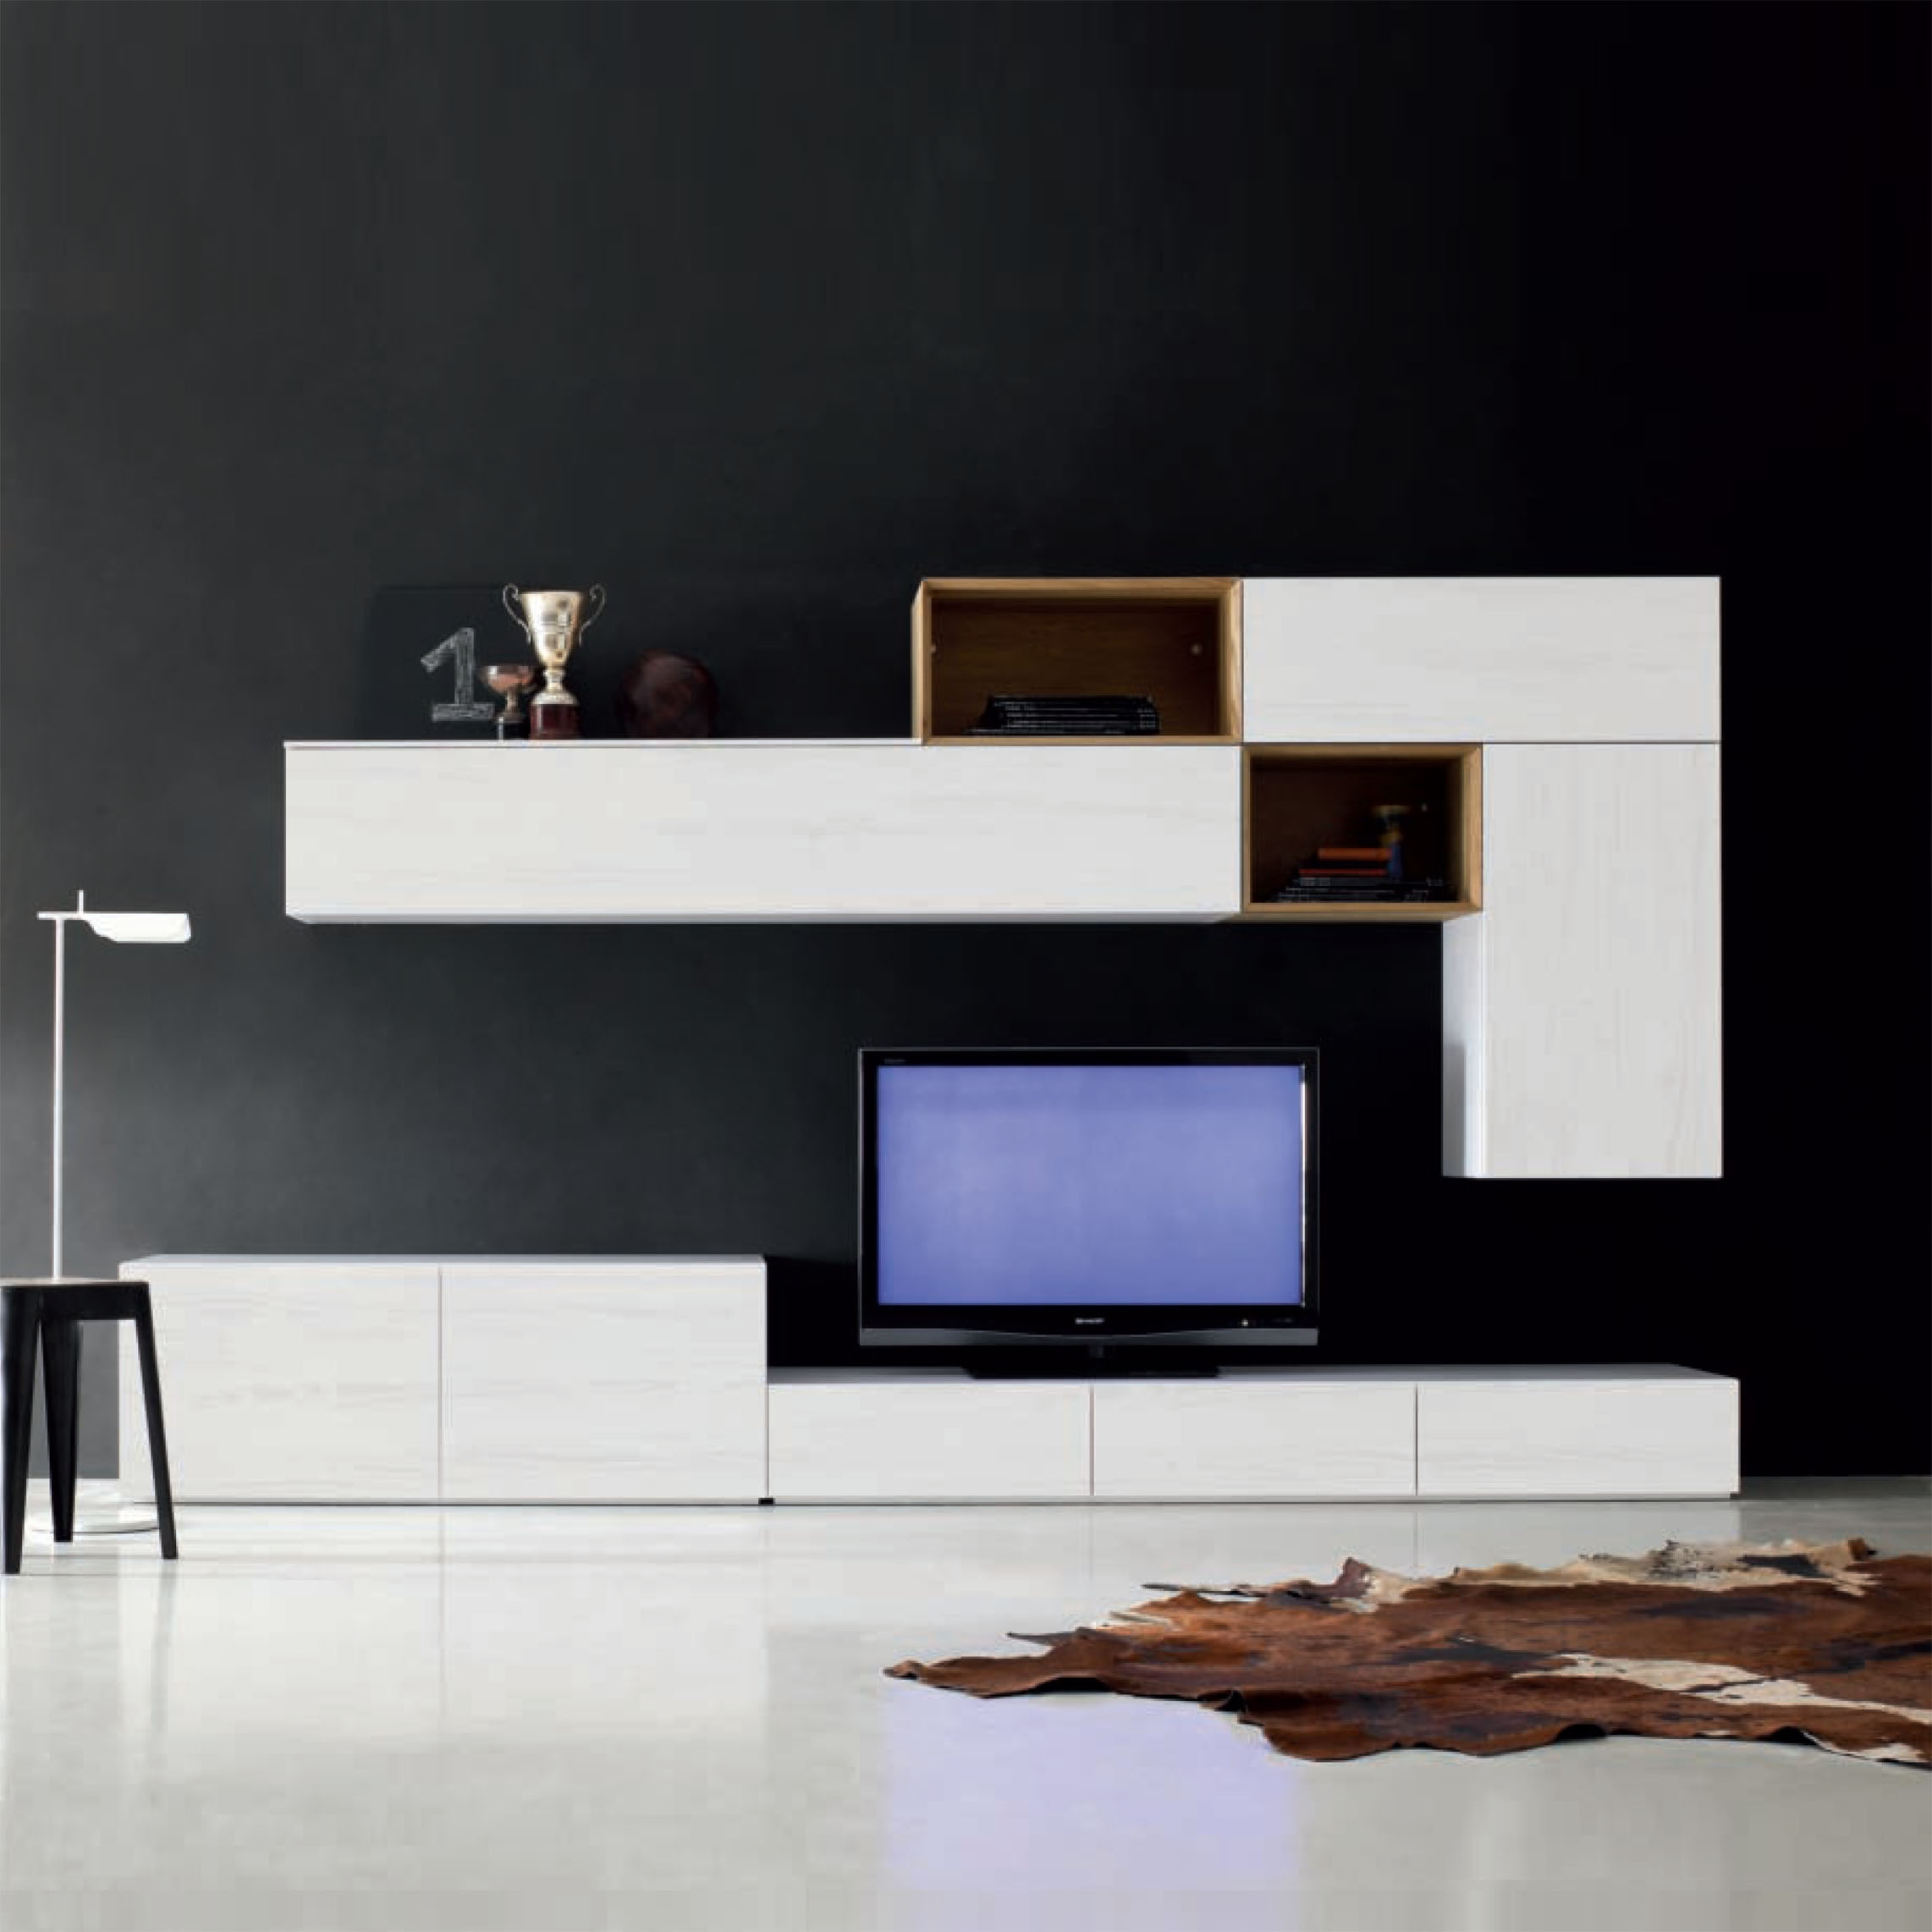 Bespoke Tv Units Wall Storage Systems My Italian Living Ltd With Bespoke Tv Stand (#4 of 15)